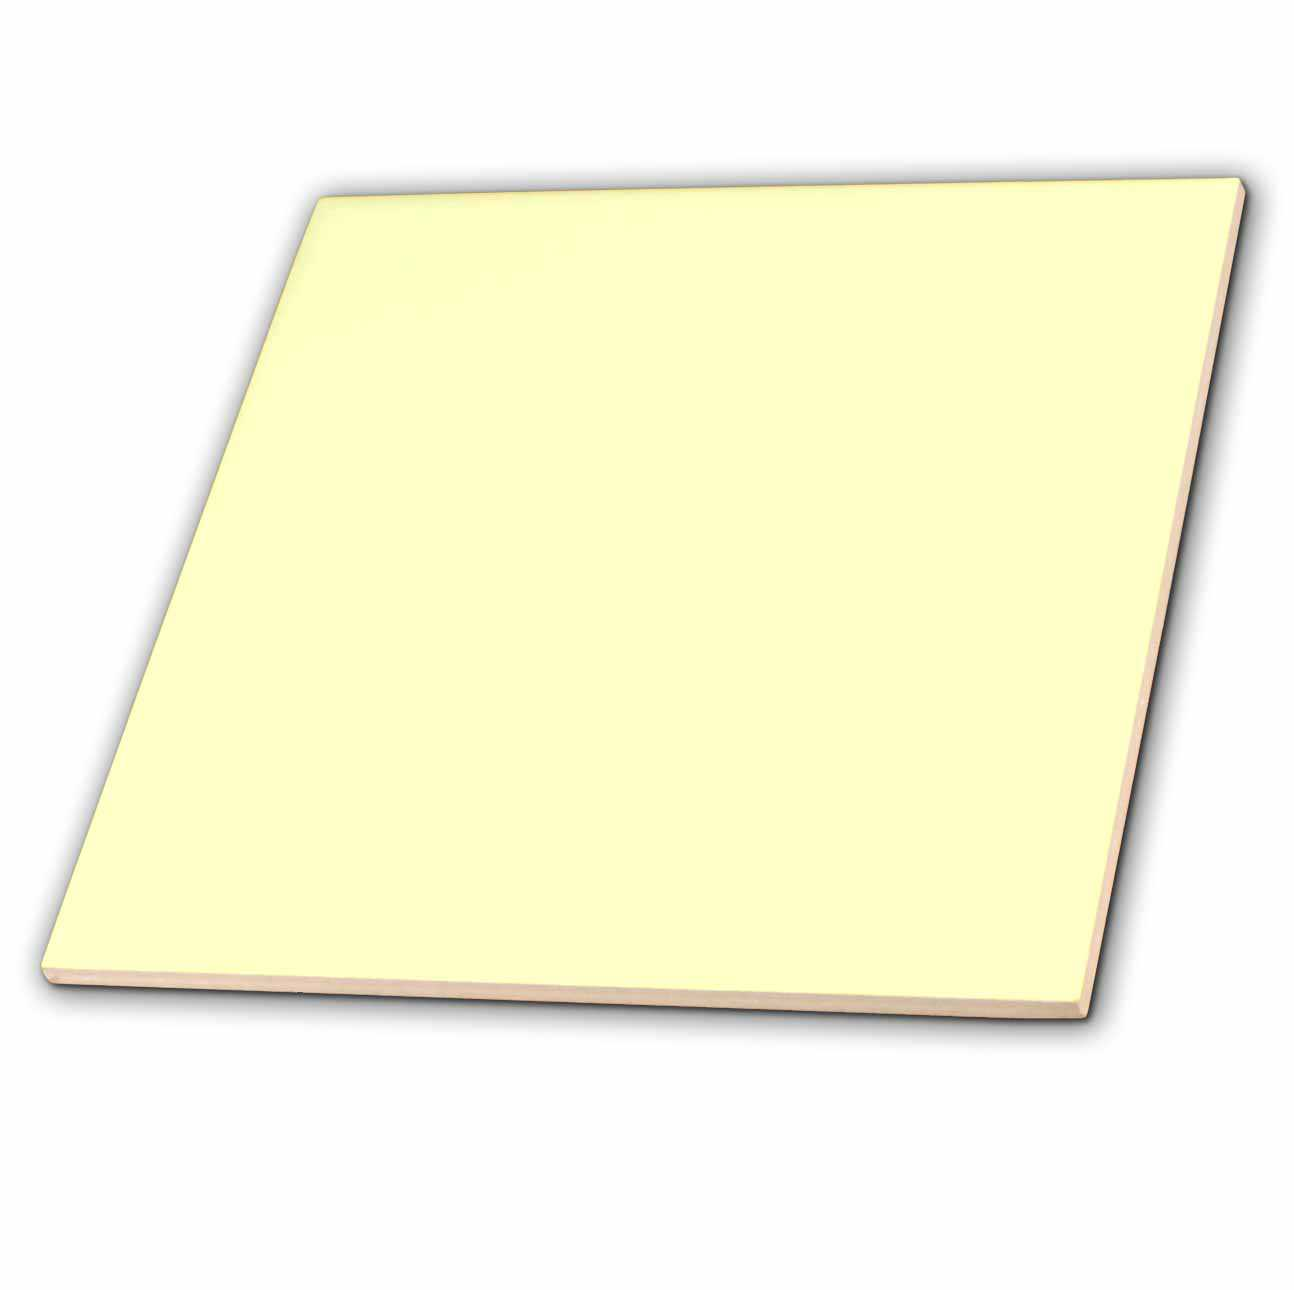 3dRose Chiffon Yellow - Ceramic Tile, 4-inch